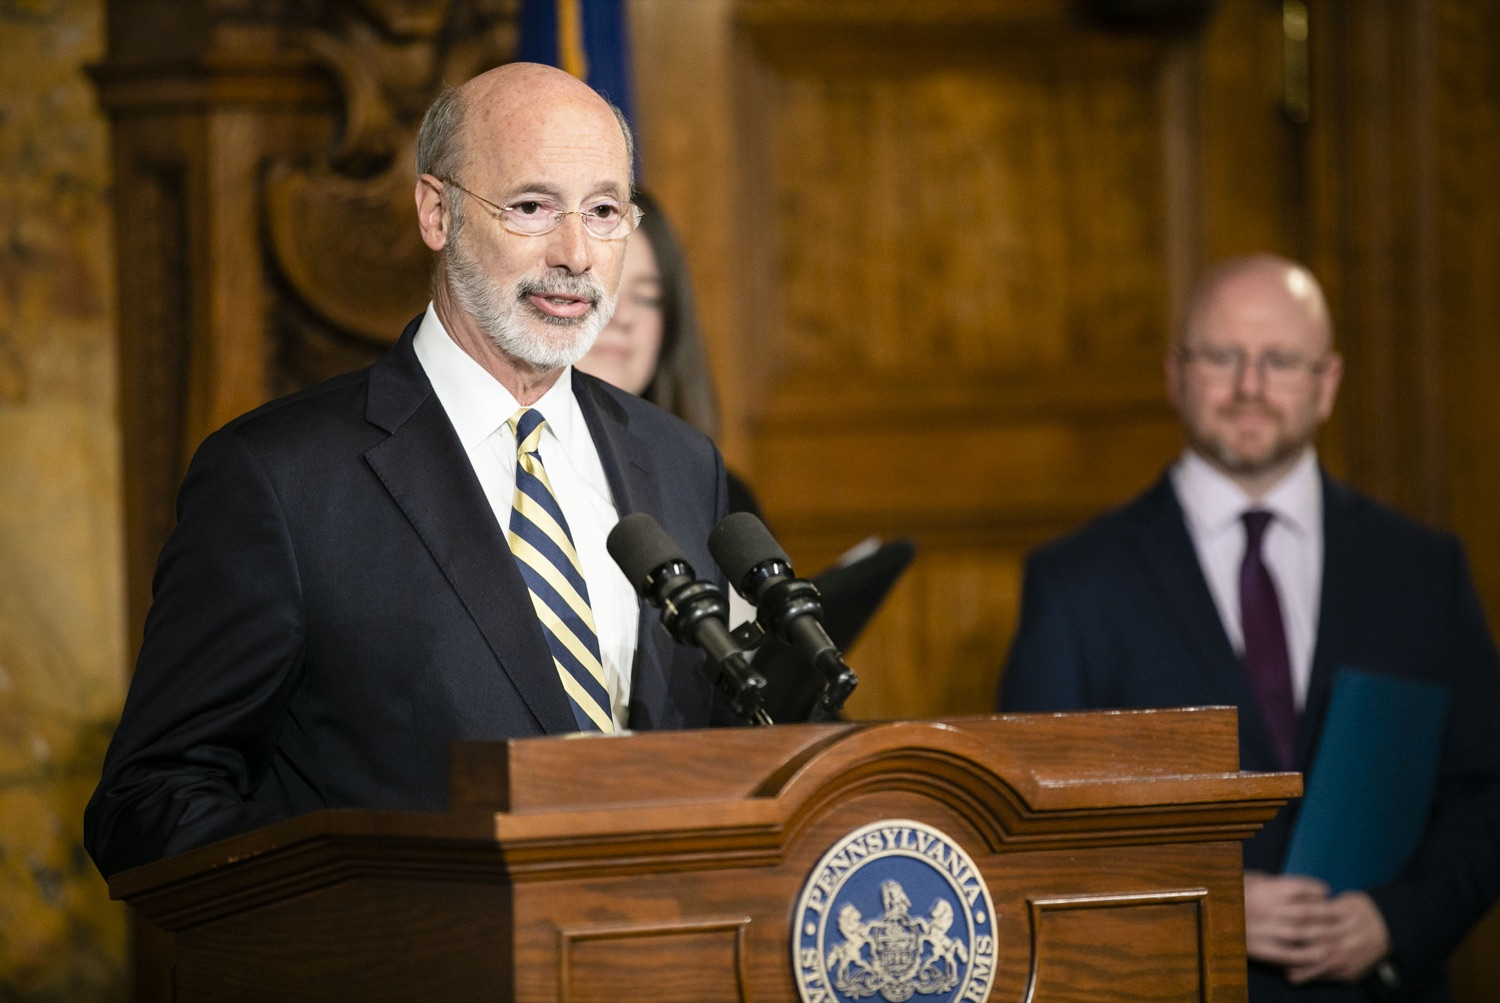 "<a href=""https://filesource.wostreaming.net/commonwealthofpa/photo/17564_GOV_aca_amb_007.jpg"" target=""_blank"">⇣ Download Photo<br></a>Governor Tom Wolf and Insurance Commissioner Jessica Altman advised Pennsylvanians that now is the time to buy health insurance on the federal exchange, healthcare.gov, as open enrollment continues for Affordable Care Act (ACA) plans through Dec. 15. Consumers have more options in Pennsylvania, and many will find they qualify for subsidies. November 7, 2019. Harrisburg, PA."